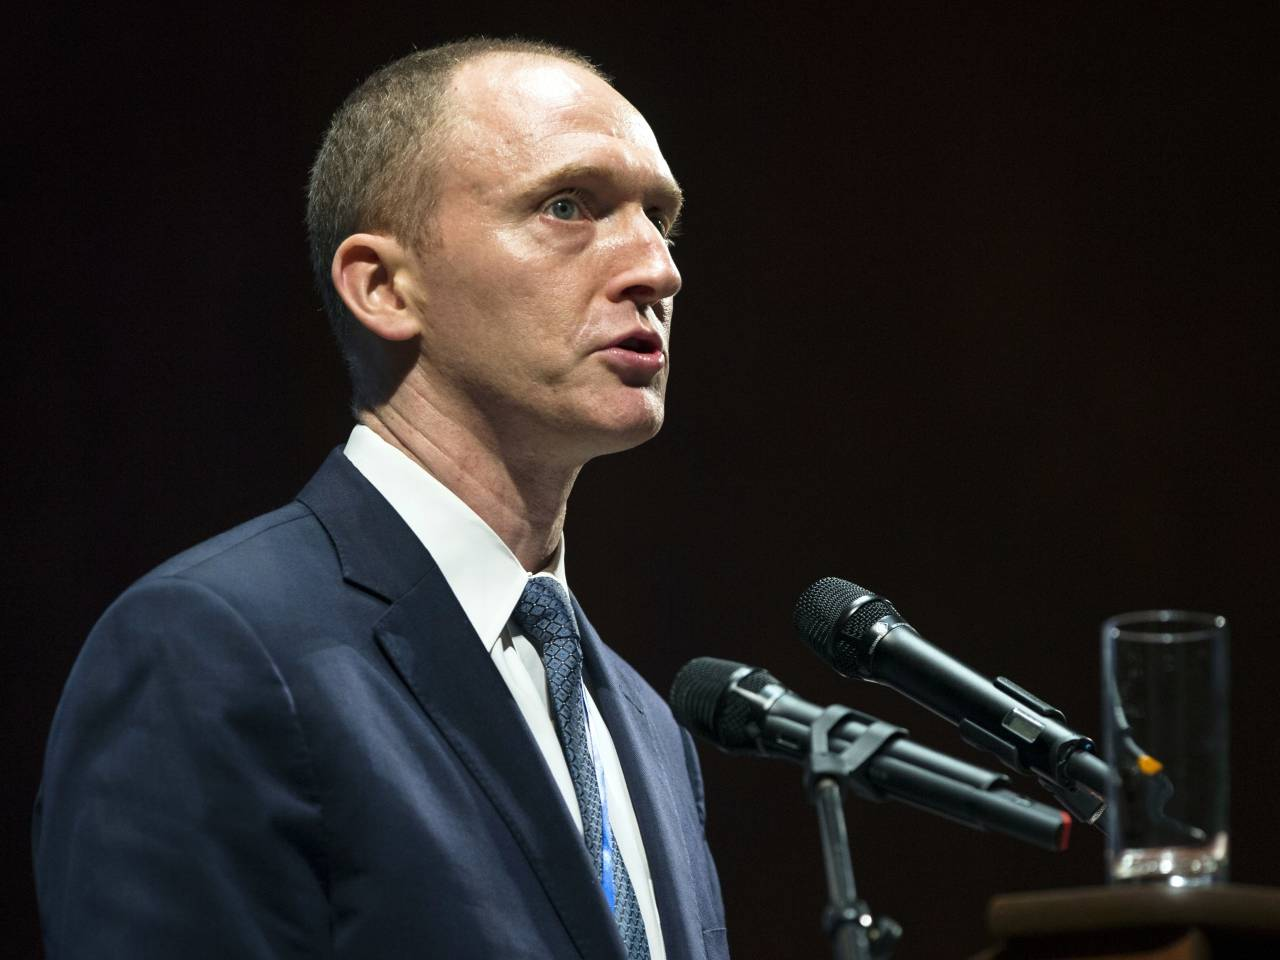 Carter Page Claims 'Horrendous Civil Rights' Violations Led to Surveillance